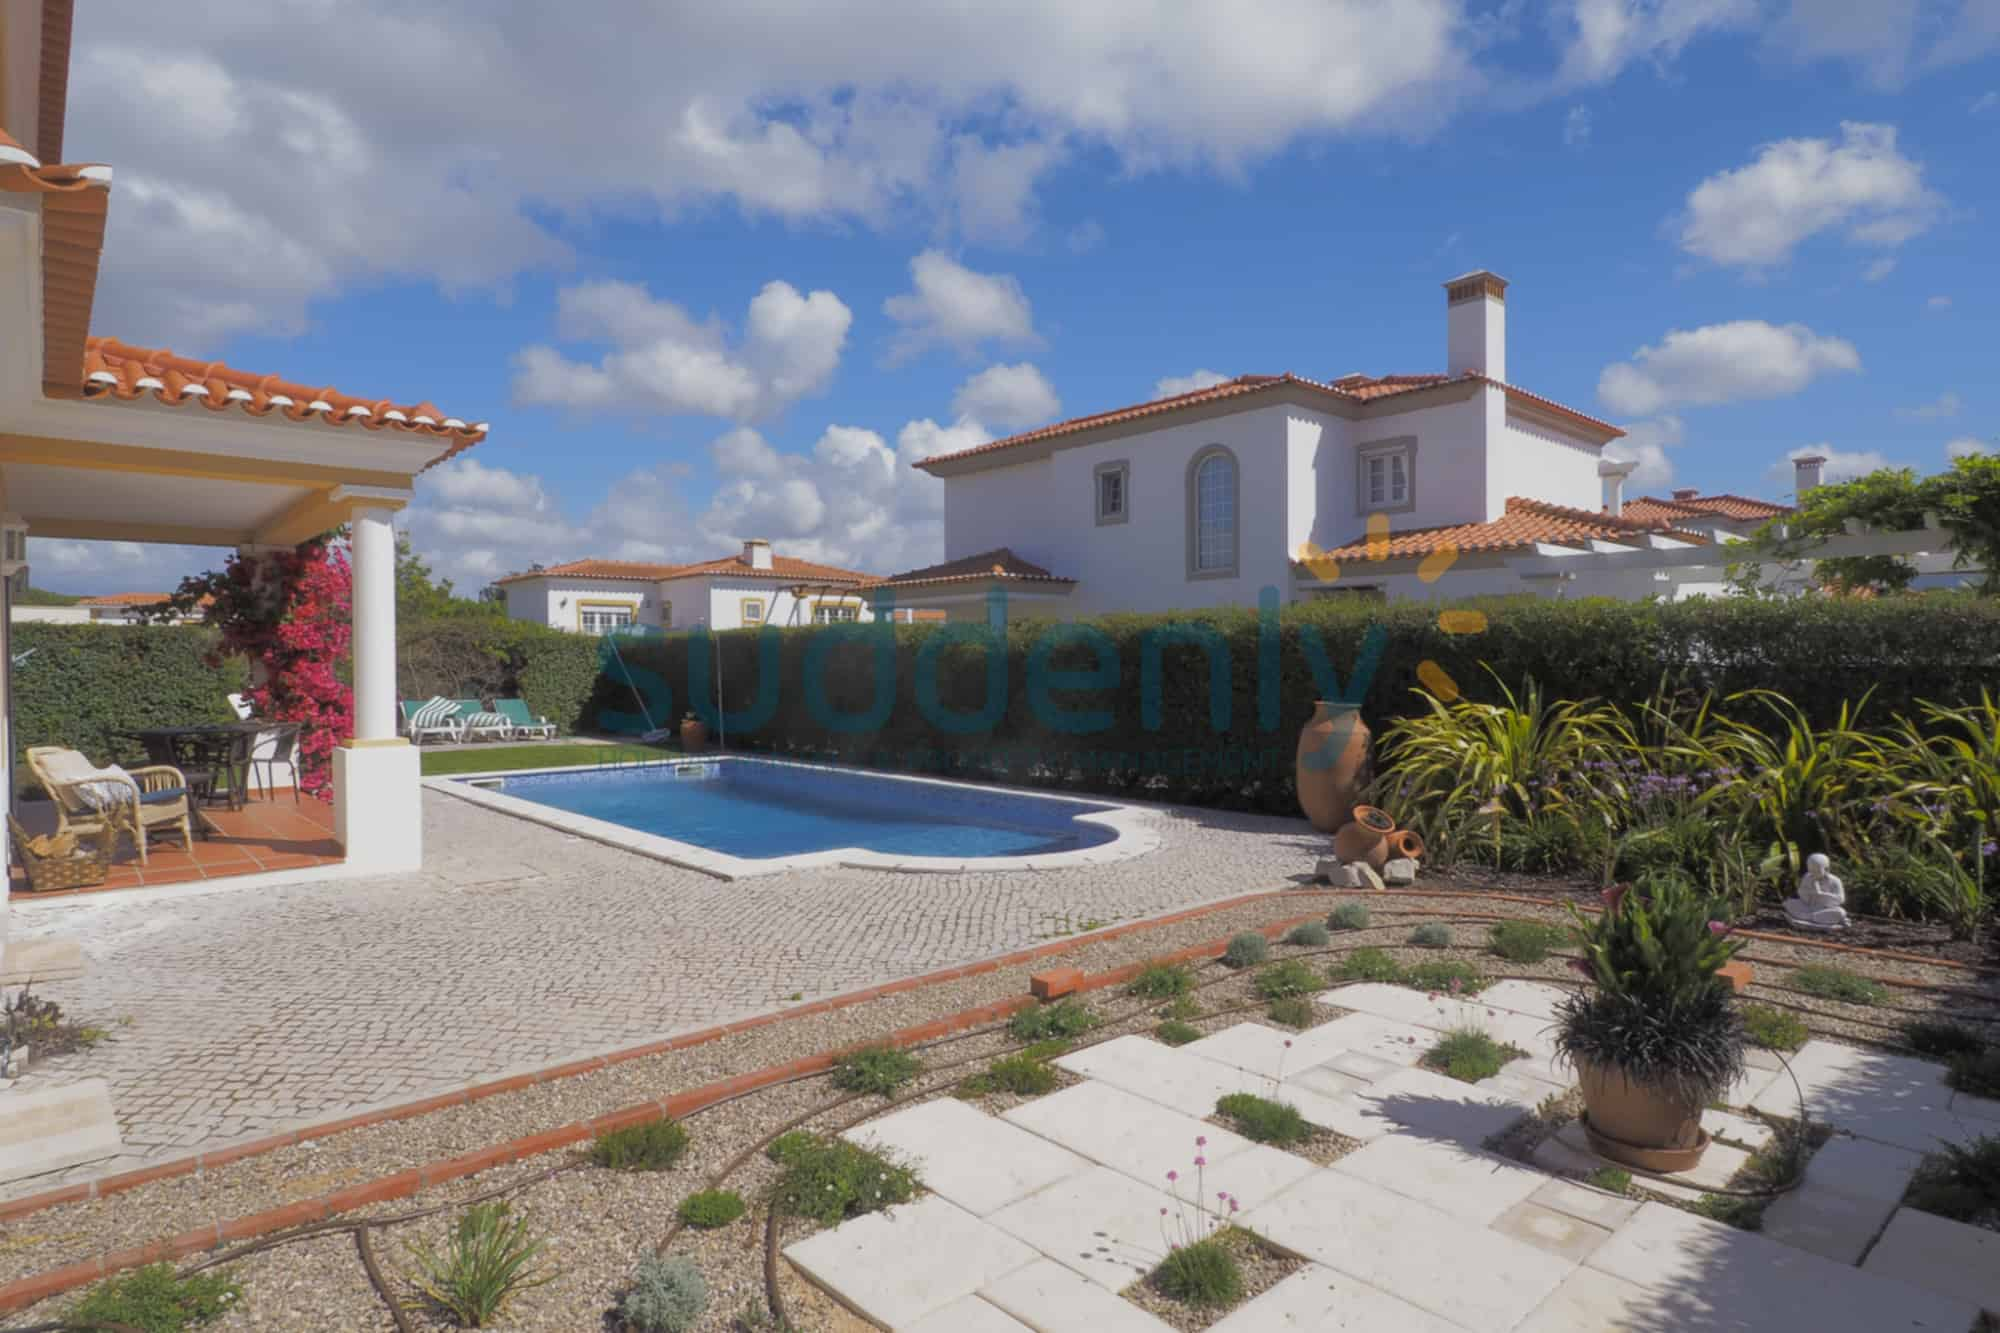 Holiday Rentals in Praia D'El Rey 293